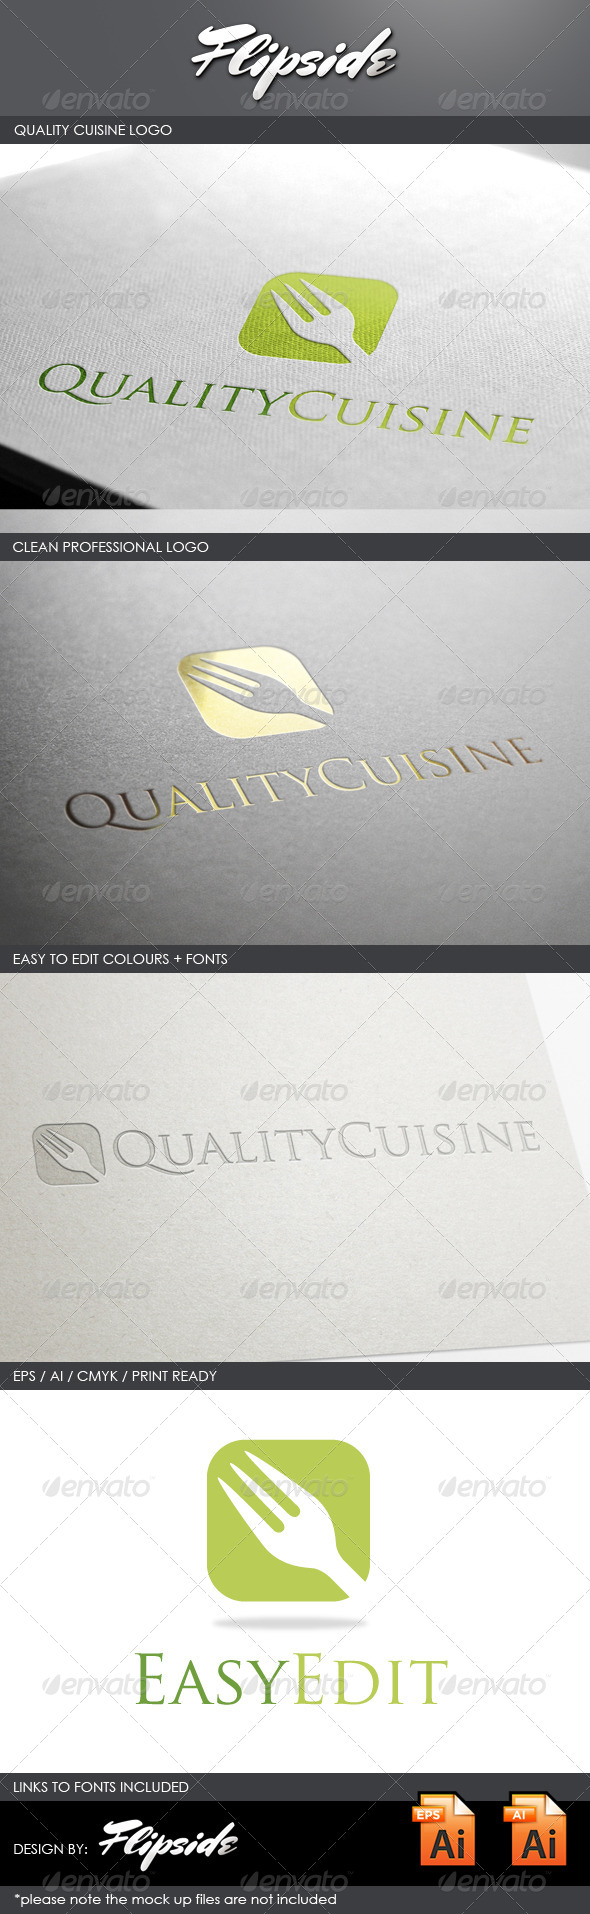 GraphicRiver Food Cuisine Logo 4327342